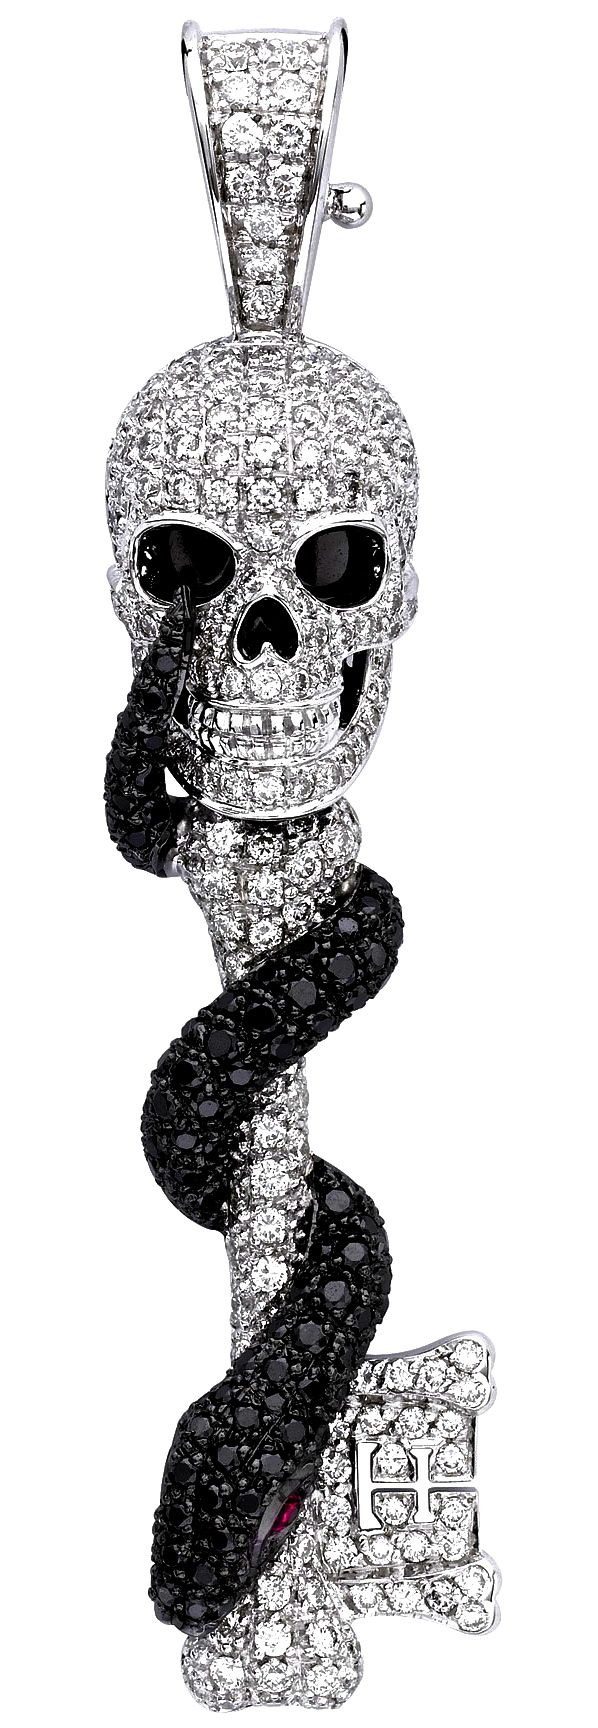 I've always been into skeketon keys but this Black & White Diamond Skull Pendant takes the cake! Even the snakes eyes are rubies♡ I NEED THIS IN MY LIFE!!!!